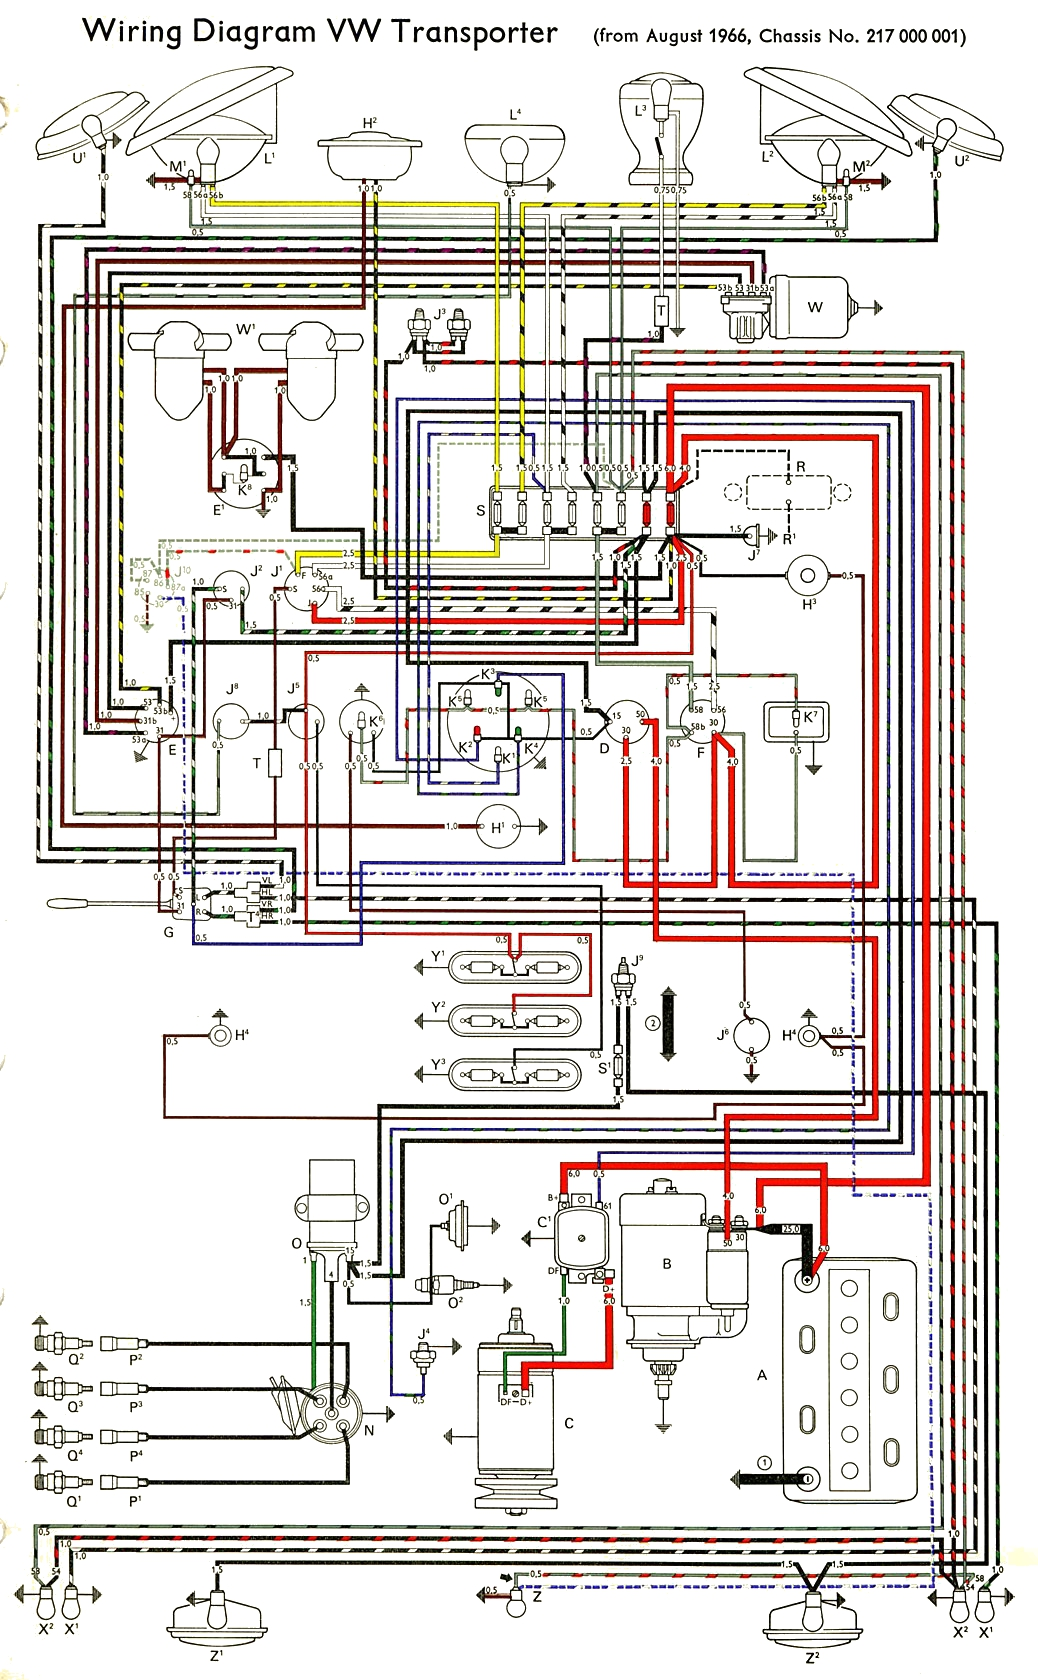 bus_67 ambulance wiring diagram elevator schematic diagram wiring diagram horton 4160 wiring diagram at panicattacktreatment.co